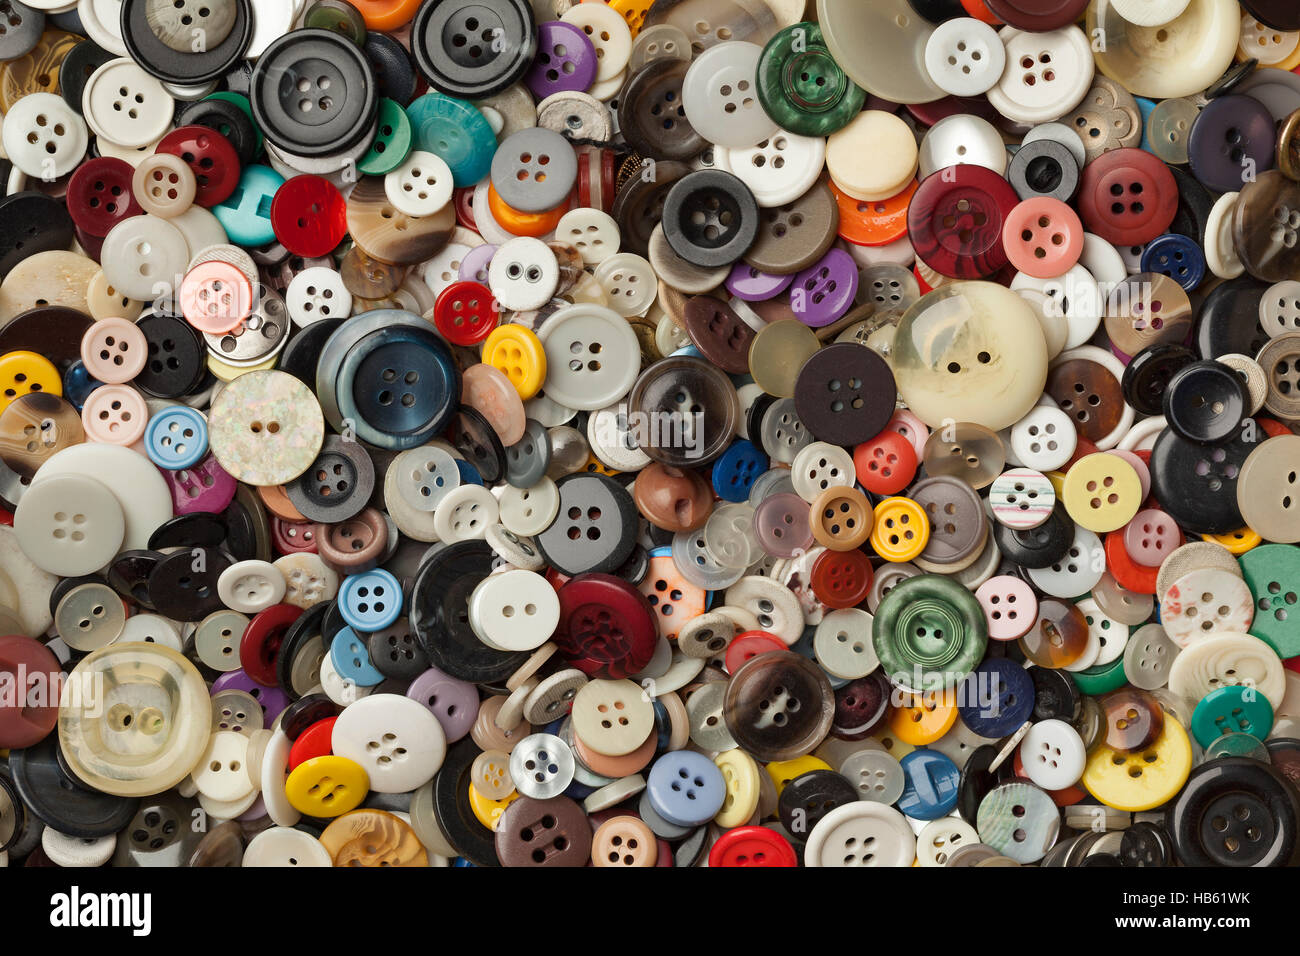 Collection of colorful sewing buttons full frame - Stock Image